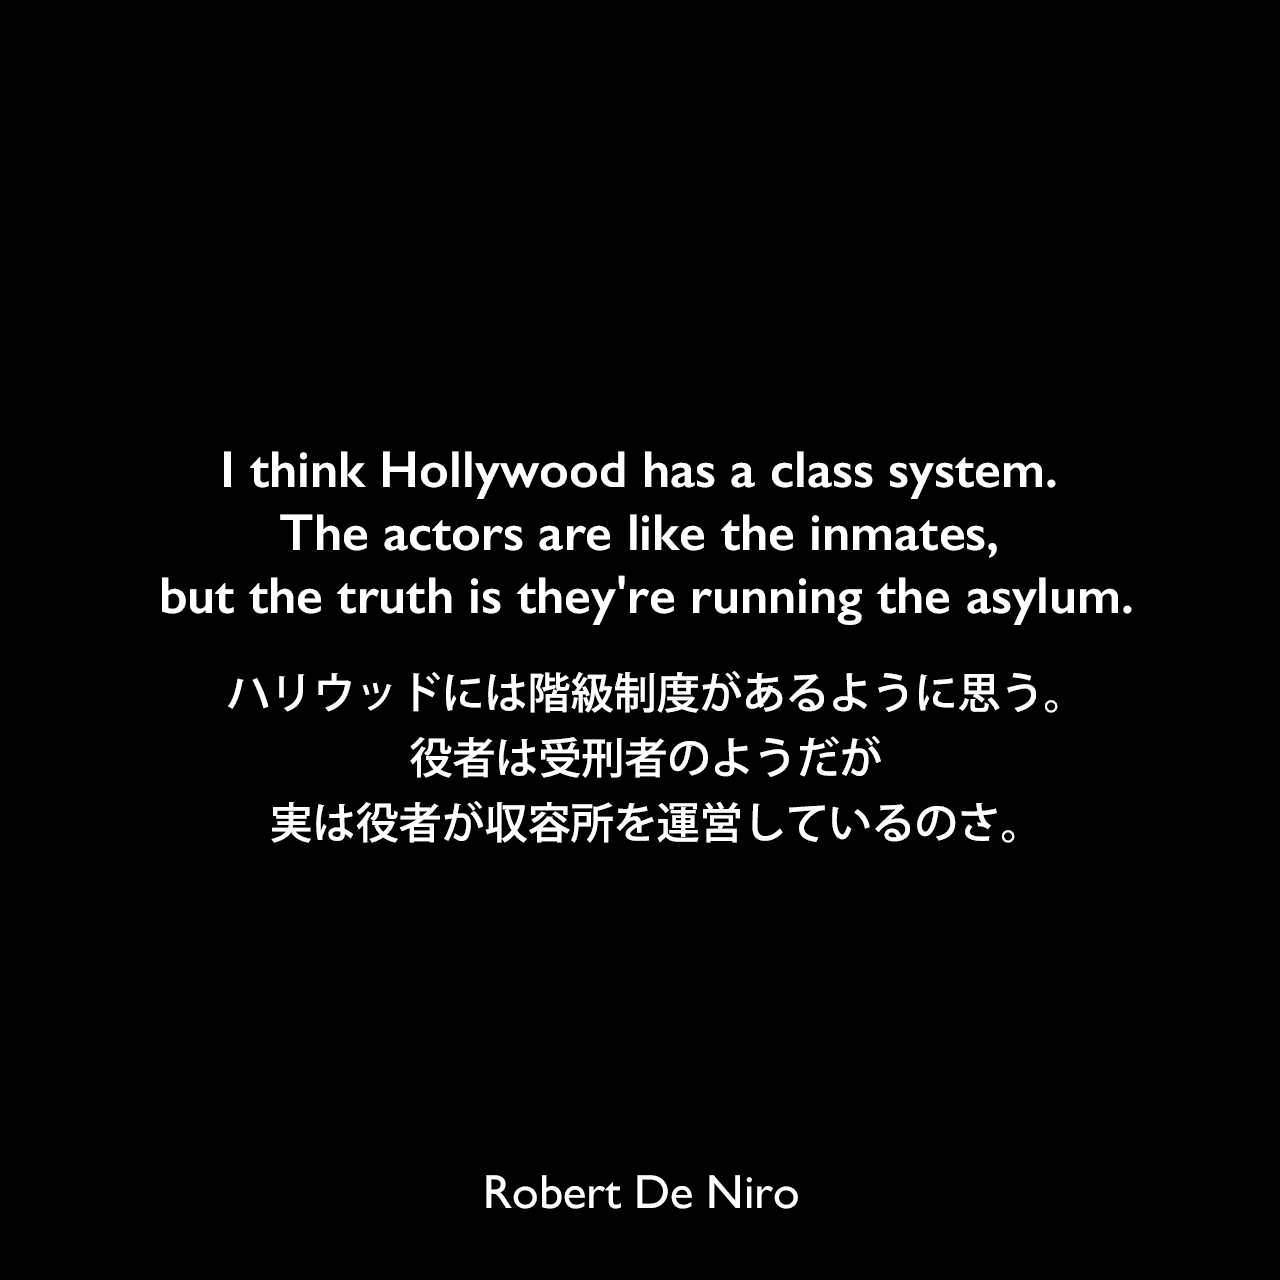 I think Hollywood has a class system. The actors are like the inmates, but the truth is they're running the asylum.ハリウッドには階級制度があるように思う。役者は受刑者のようだが、実は役者が収容所を運営しているのさ。Robert De Niro